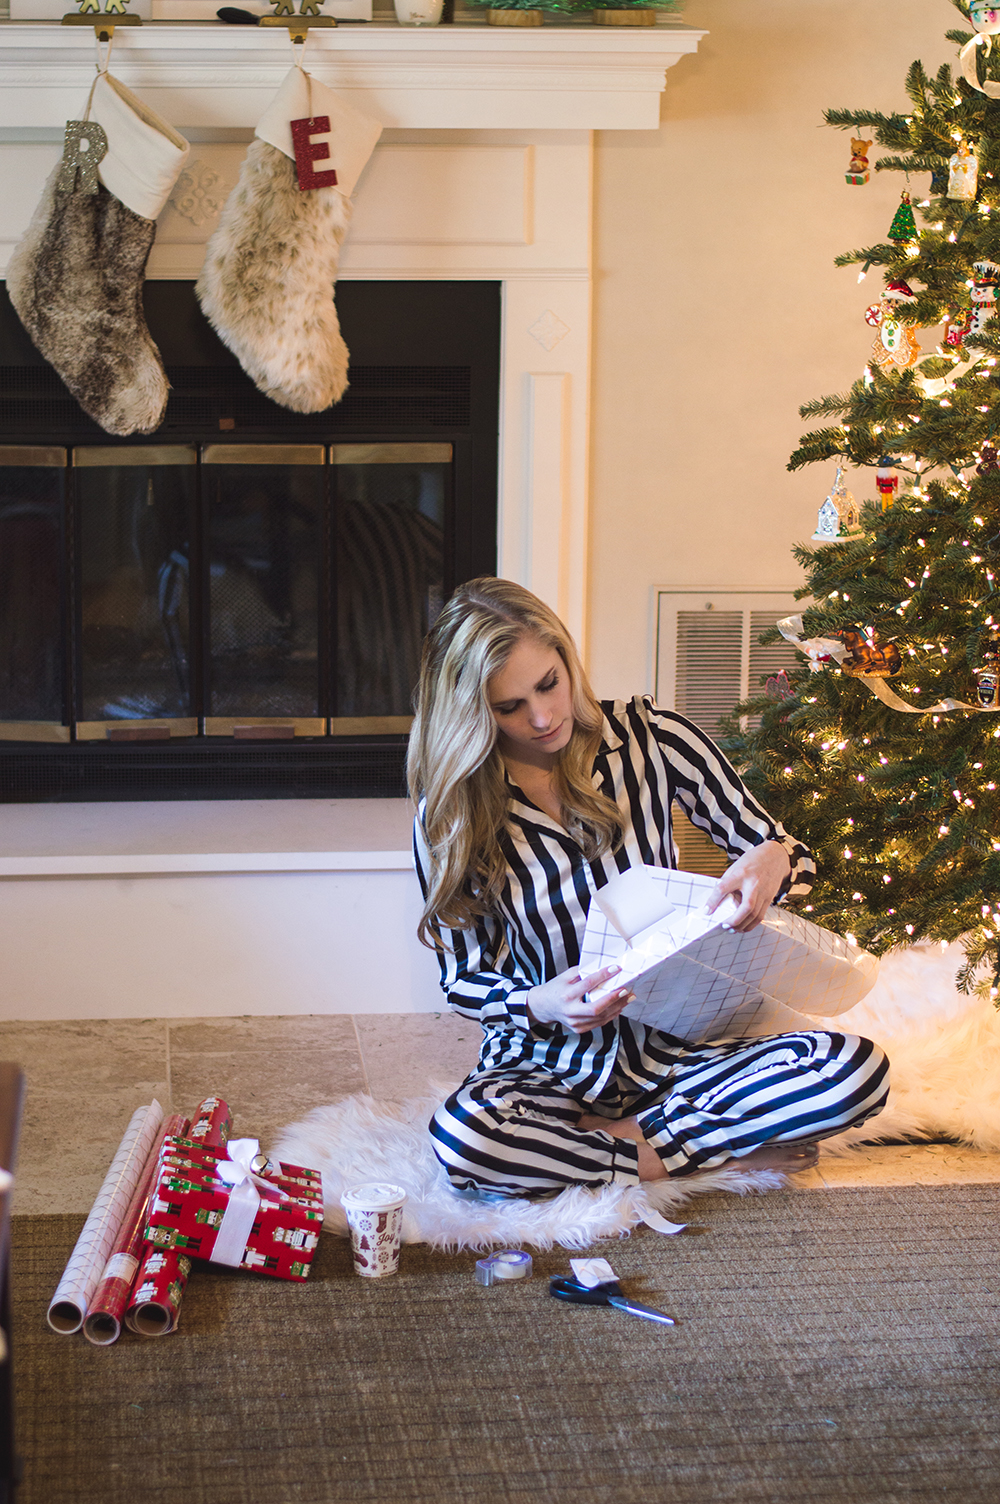 styelled-blog-fashion-blogger-style-wrapping-target-paper-christmas-gift-wrap-bows-glitter-nutcracker-tree-ornaments-stockings-pajamas-boohoo-tutorial-diy-10